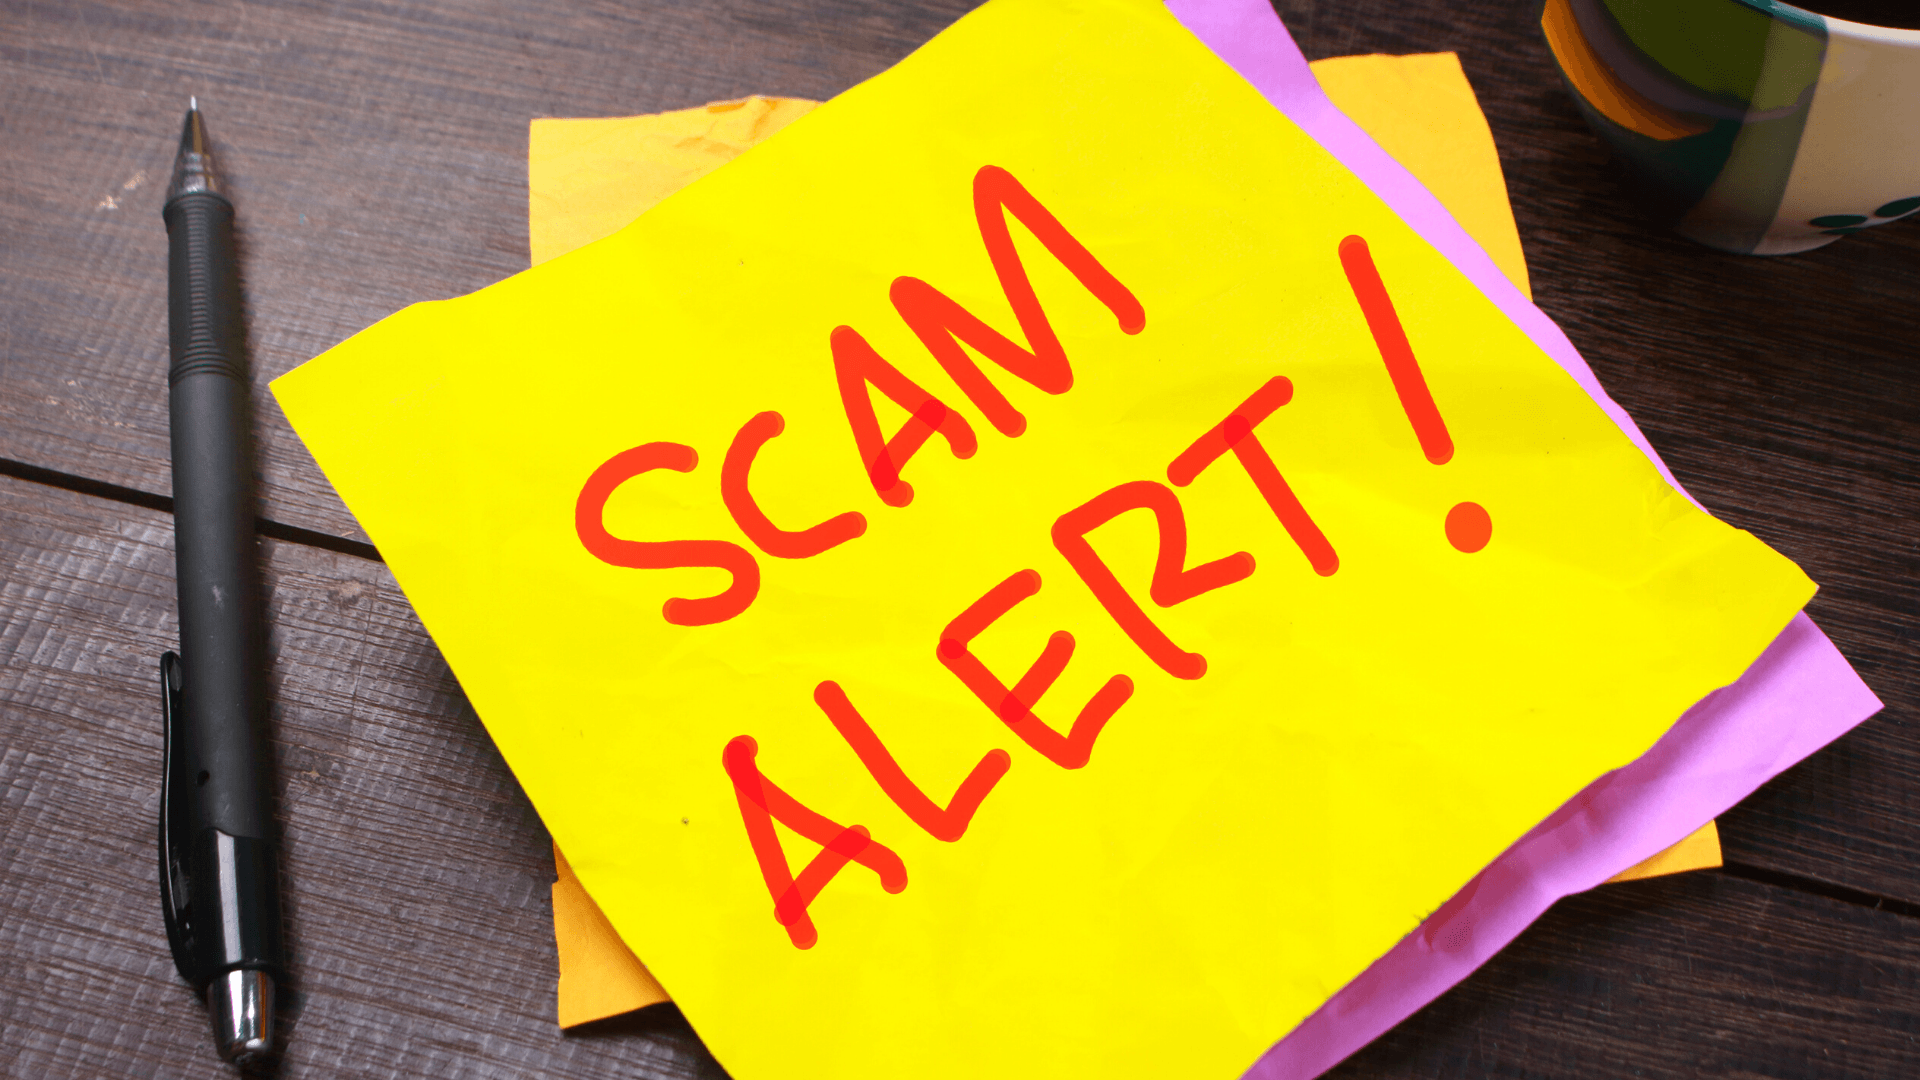 Scam Alert on Post-it note